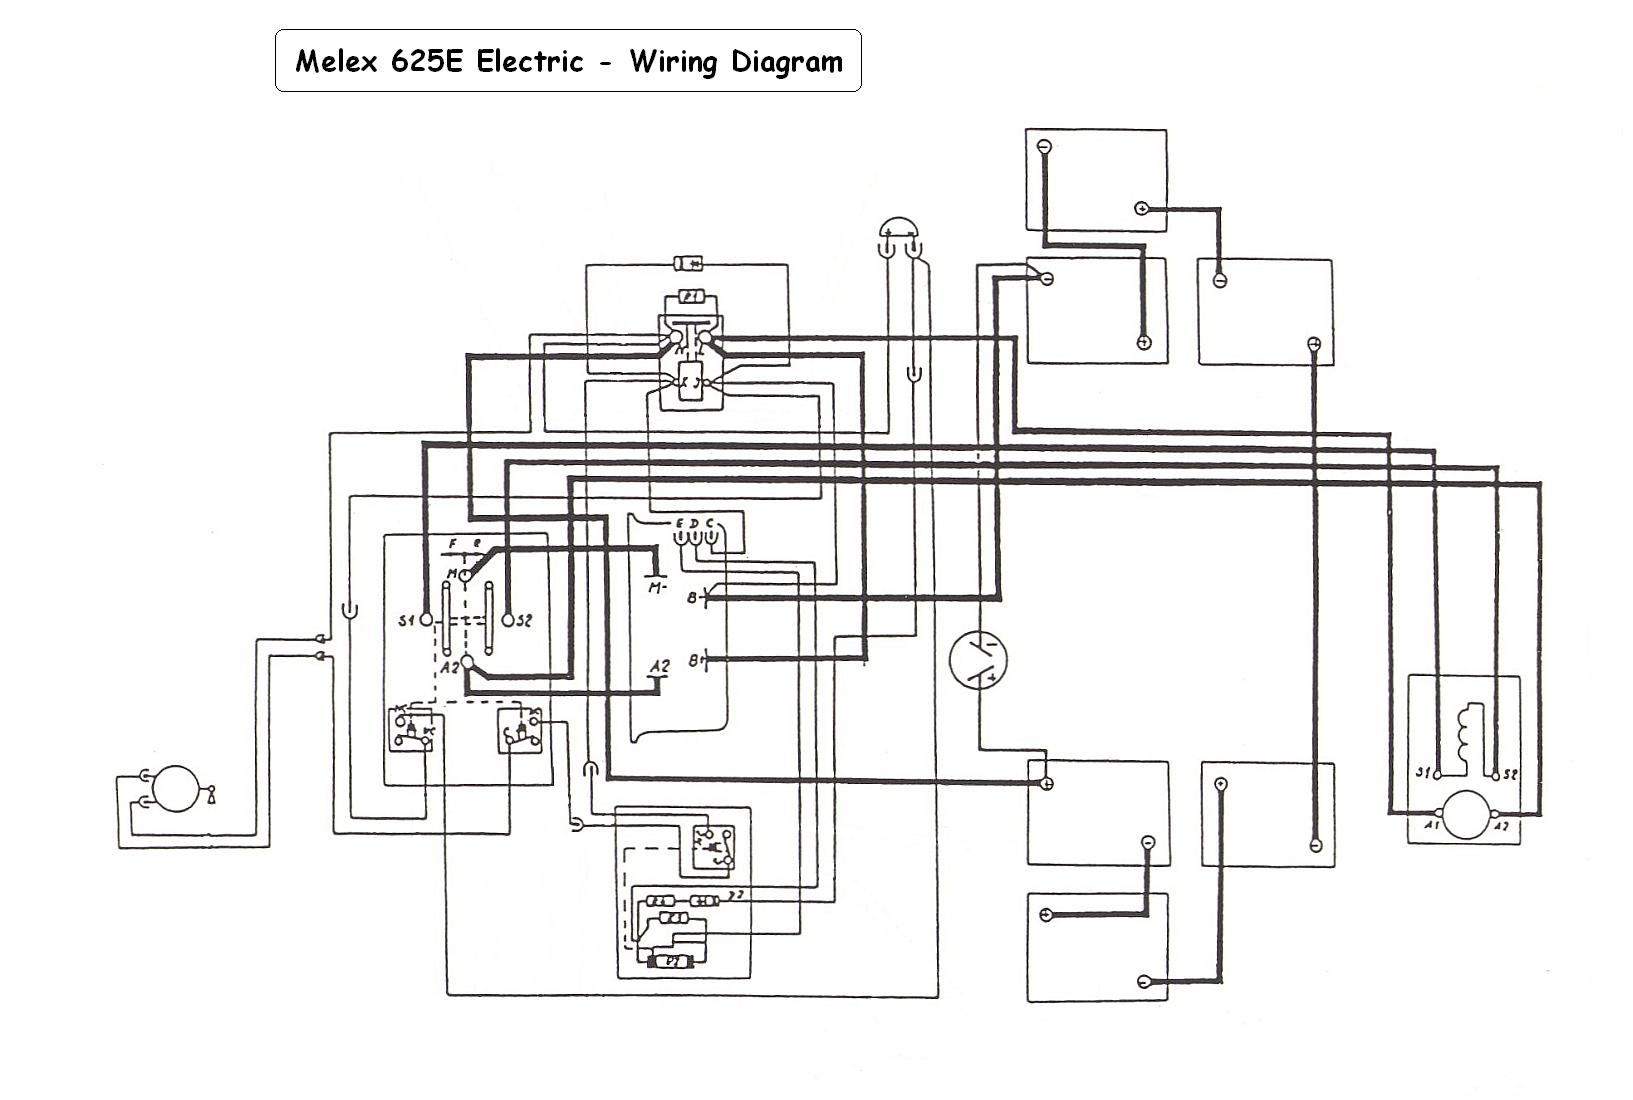 vintagegolfcartparts com melex model 625e electric wiring diagram